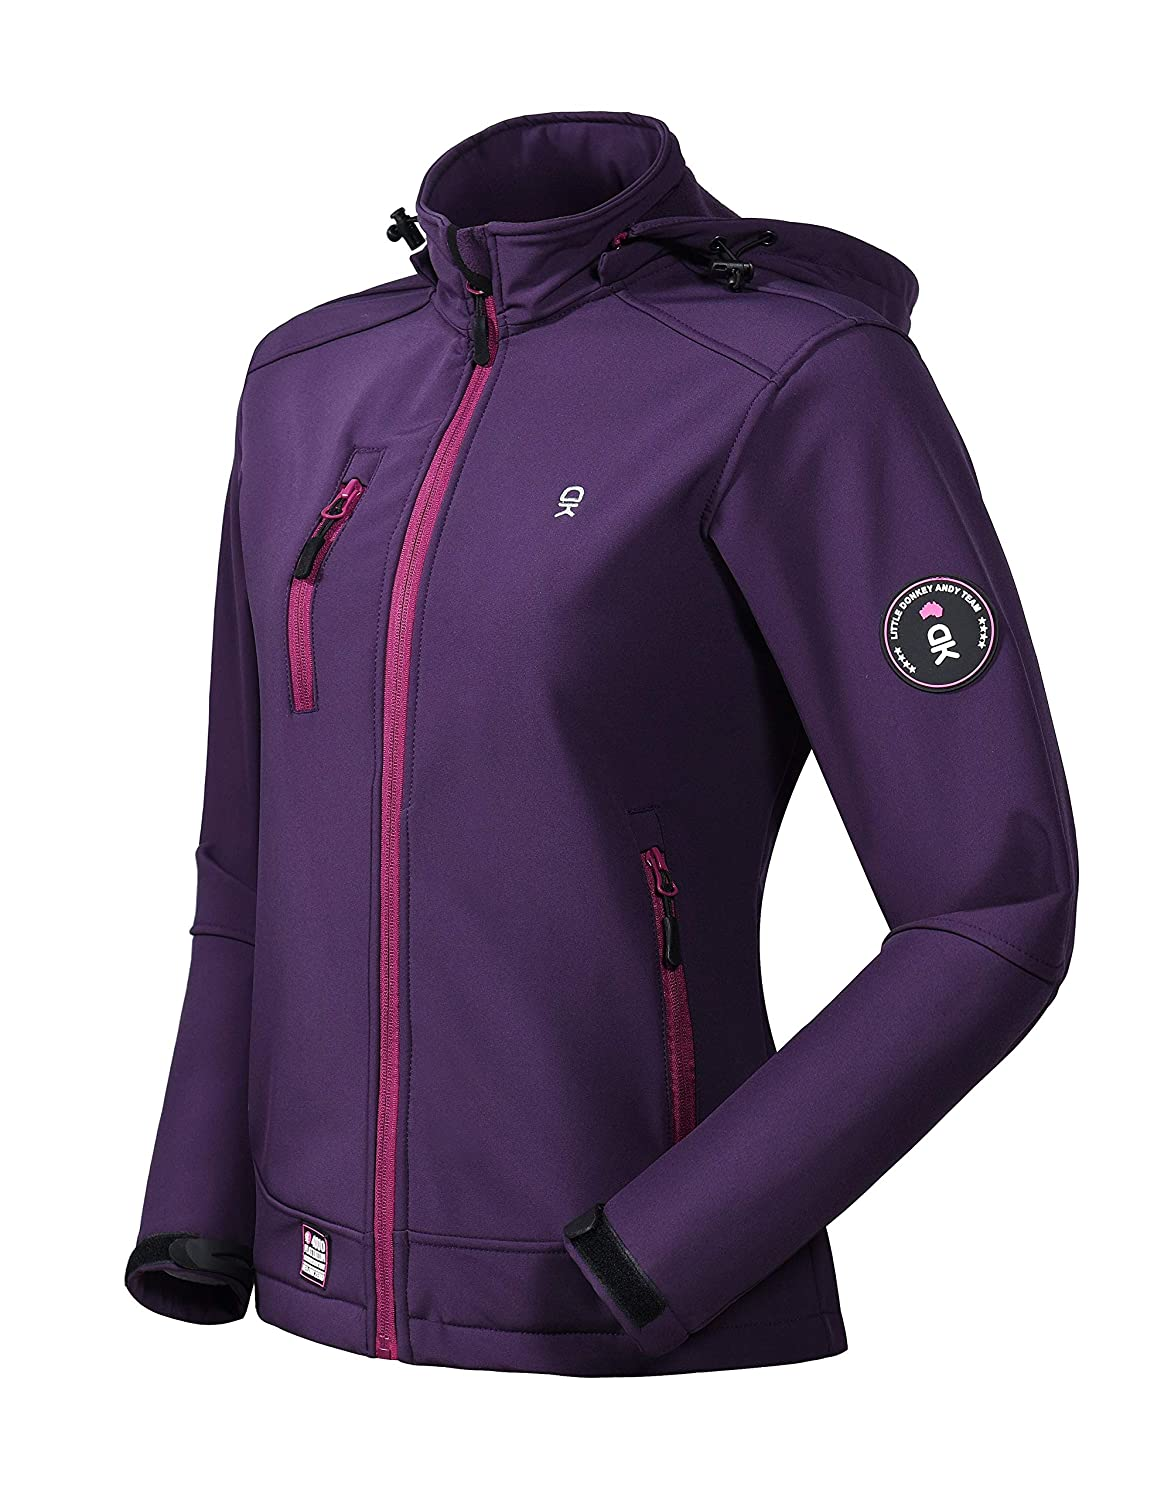 Fleece Lined and Water Repellent Little Donkey Andy Women/'s Softshell Jacket with Removable Hood